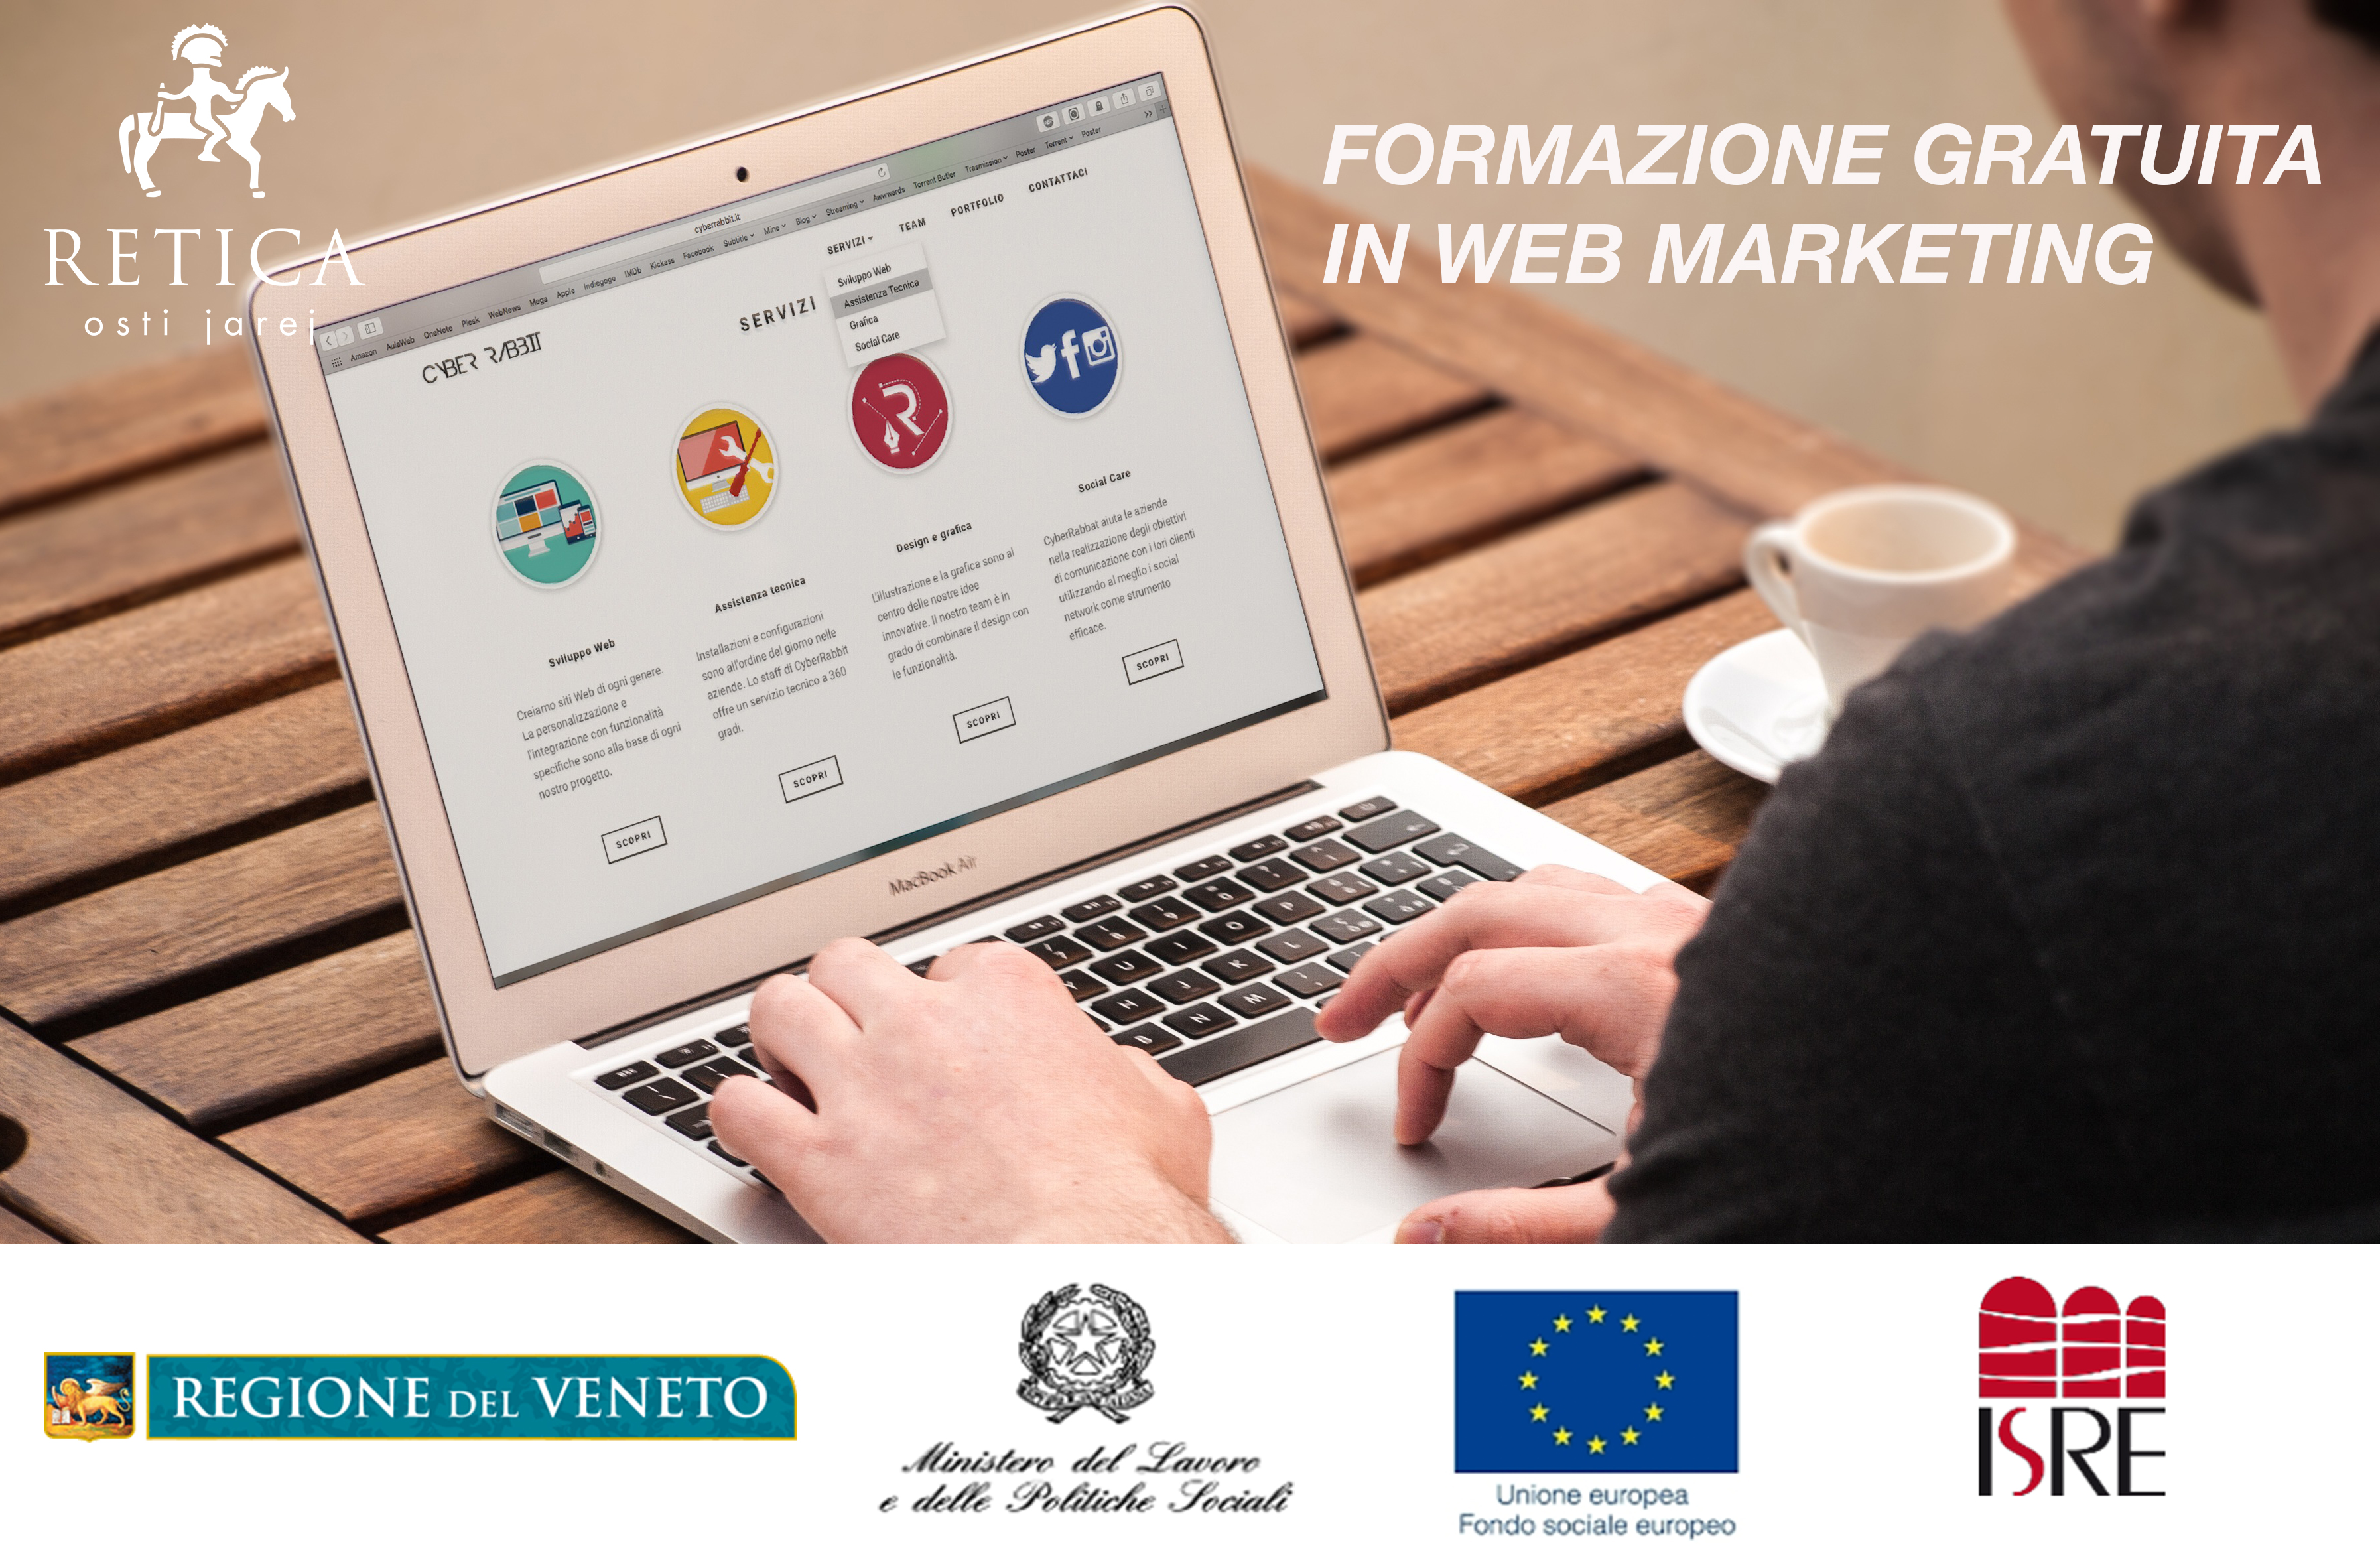 FORMAZIONE GRATUITA IN WEB MARKETING